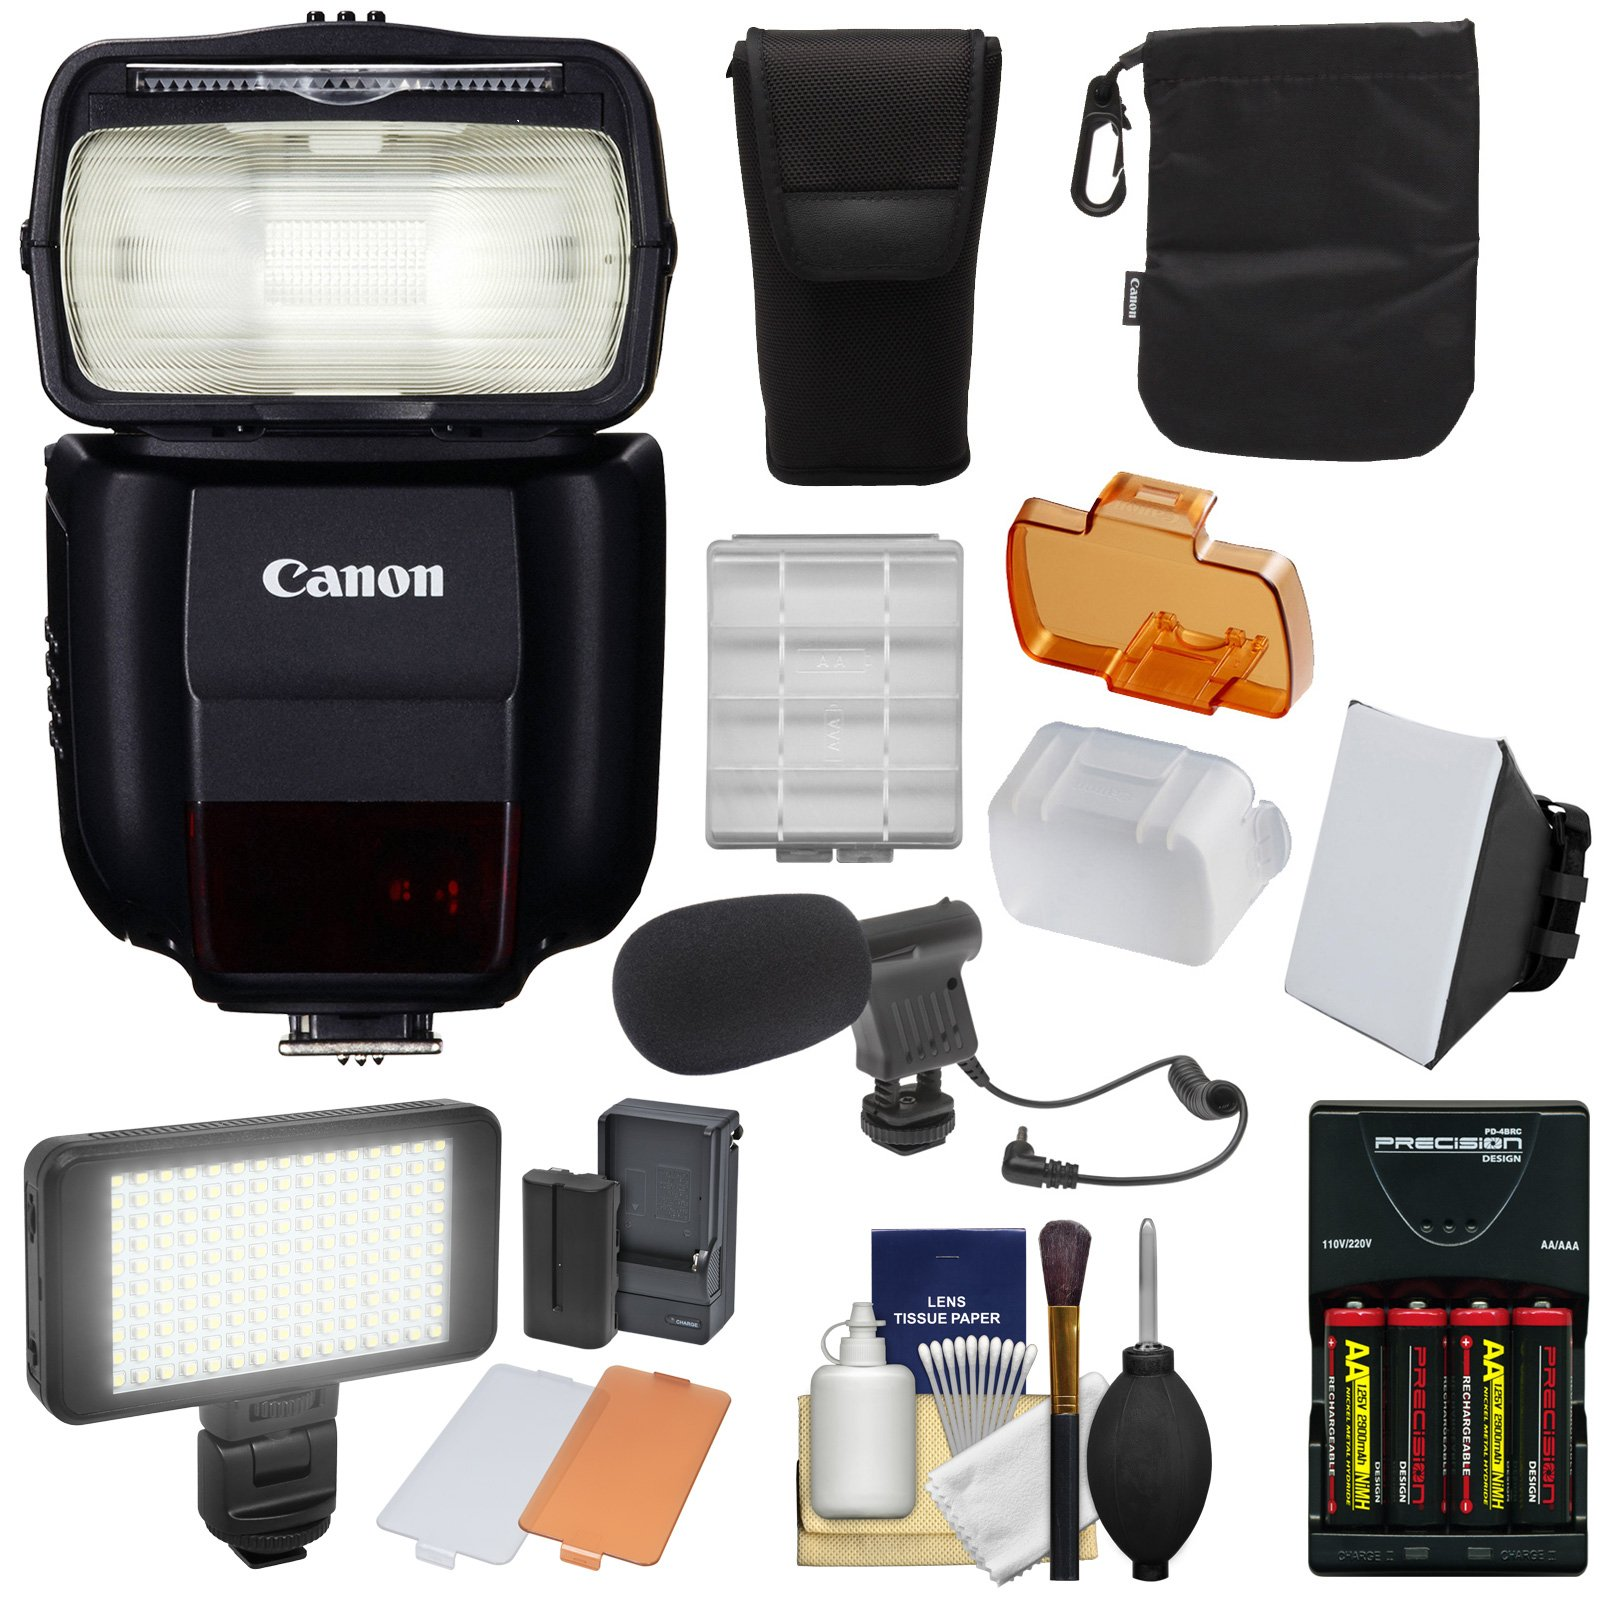 Canon Speedlite 430EX III-RT Flash with Soft Box + Batteries & Charger + LED Video Light & Microphone Kit